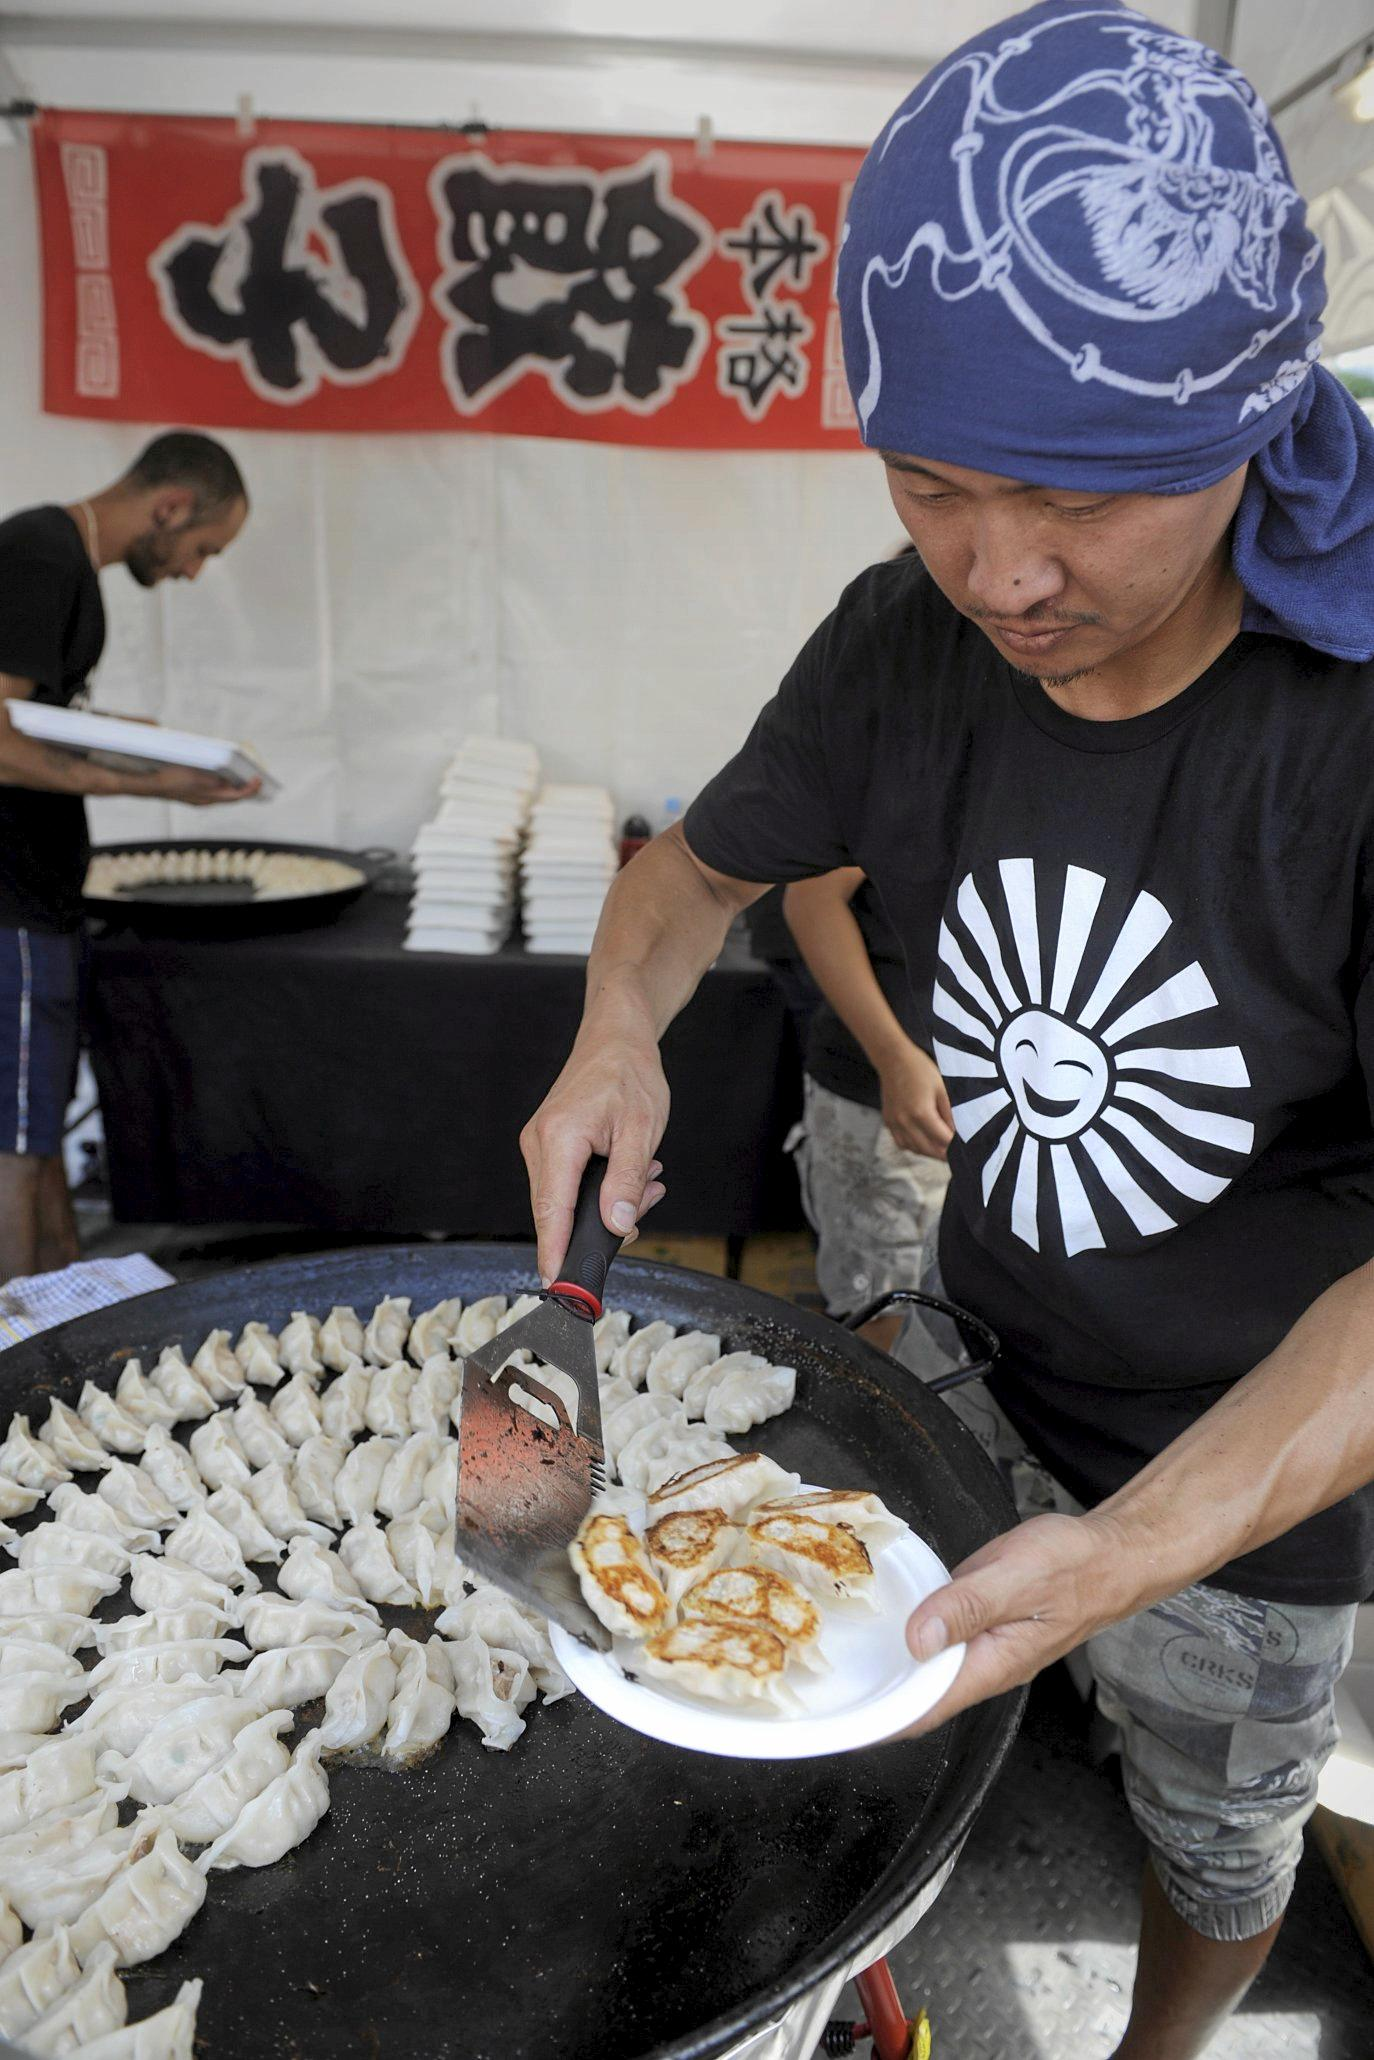 Shor of Shoza Gyoza will bring his street food to the festival.